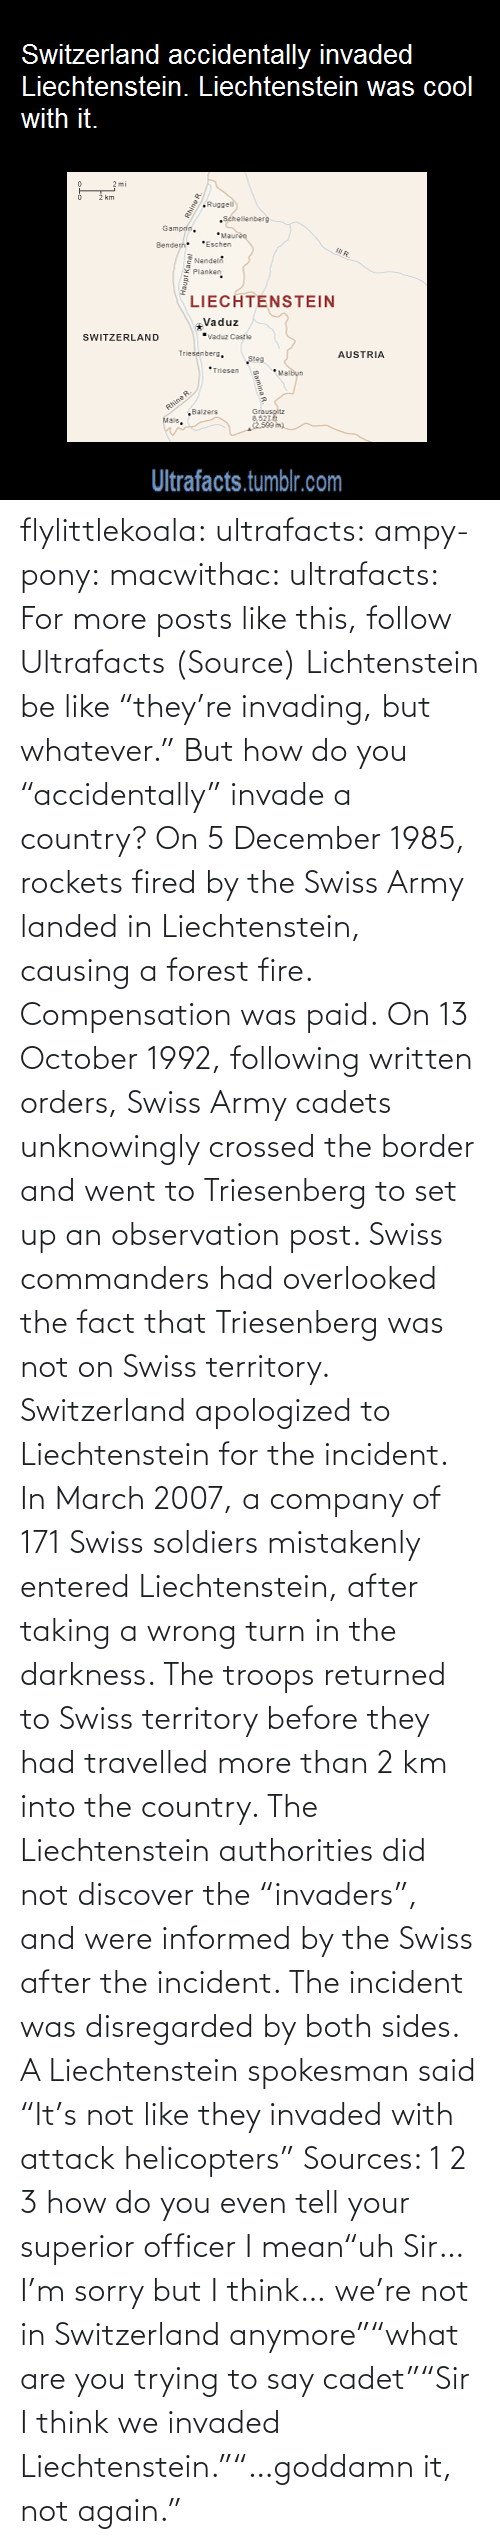 "But Whatever: Switzerland accidentally invaded  Liechtenstein. Liechtenstein was cool  with it.  km  Ruggell  Séhellenberg  Gampfe.  *Maure  *Eschen  Bendern  Nendel  Planken  LIECHTENSTEIN  Vaduz  ""Vaduz Castie  SWITZERLAND  Triesenbers.  AUSTRIA  Steg  *Triesen  *Malbun  Rhine R.  ""Balzers  Mals.  Grausoltz  8,521  2.500 m)  Ultrafacts.tumblr.com  Haupt Kanal  Samina R flylittlekoala:  ultrafacts:  ampy-pony:  macwithac:  ultrafacts:  For more posts like this, follow Ultrafacts (Source)  Lichtenstein be like ""they're invading, but whatever.""  But how do you ""accidentally"" invade a country?  On 5 December 1985, rockets fired by the Swiss Army landed in Liechtenstein, causing a forest fire. Compensation was paid. On 13 October 1992, following written orders, Swiss Army cadets unknowingly crossed the border and went to Triesenberg to set up an observation post. Swiss commanders had overlooked the fact that Triesenberg was not on Swiss territory. Switzerland apologized to Liechtenstein for the incident. In March 2007, a company of 171 Swiss soldiers mistakenly entered Liechtenstein, after taking a wrong turn in the darkness. The troops returned to Swiss territory before they had travelled more than 2 km into the country. The Liechtenstein authorities did not discover the ""invaders"", and were informed by the Swiss after the incident. The incident was disregarded by both sides. A Liechtenstein spokesman said ""It's not like they invaded with attack helicopters"" Sources: 1 2 3  how do you even tell your superior officer I mean""uh Sir… I'm sorry but I think… we're not in Switzerland anymore""""what are you trying to say cadet""""Sir I think we invaded Liechtenstein.""""…goddamn it, not again."""